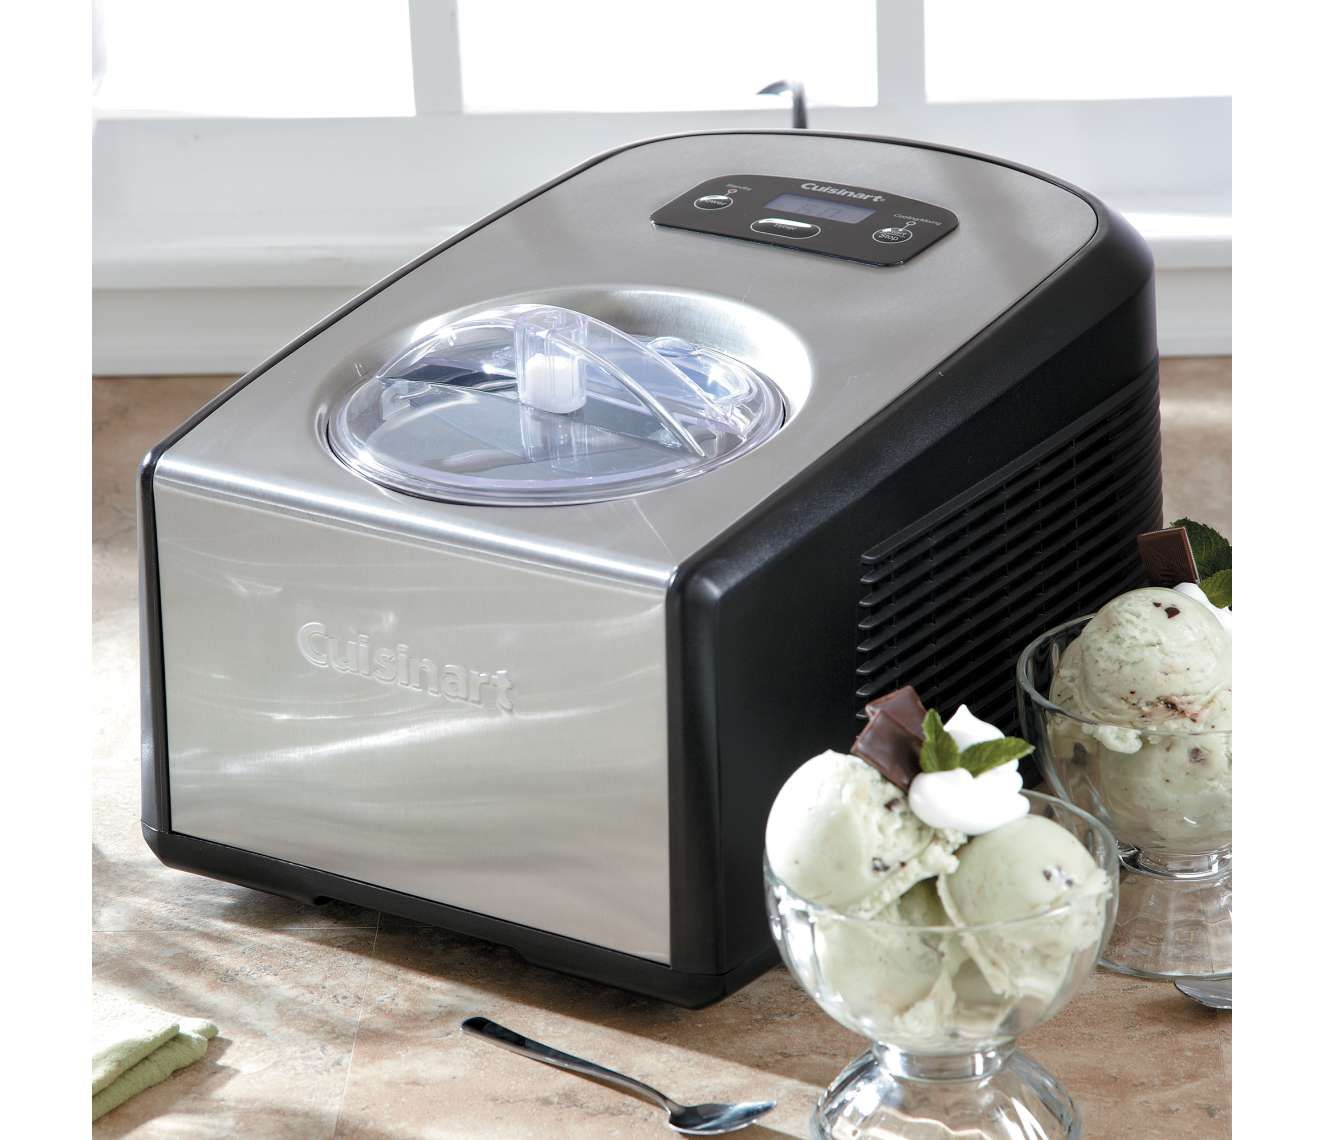 Cuisinart Commercial Quality Ice Cream Amp Gelato Maker Ice 100 Chefscatalog Com Just Add Yummy Ingredients And P Gelato Maker Cuisinart Ice Cream Gelato